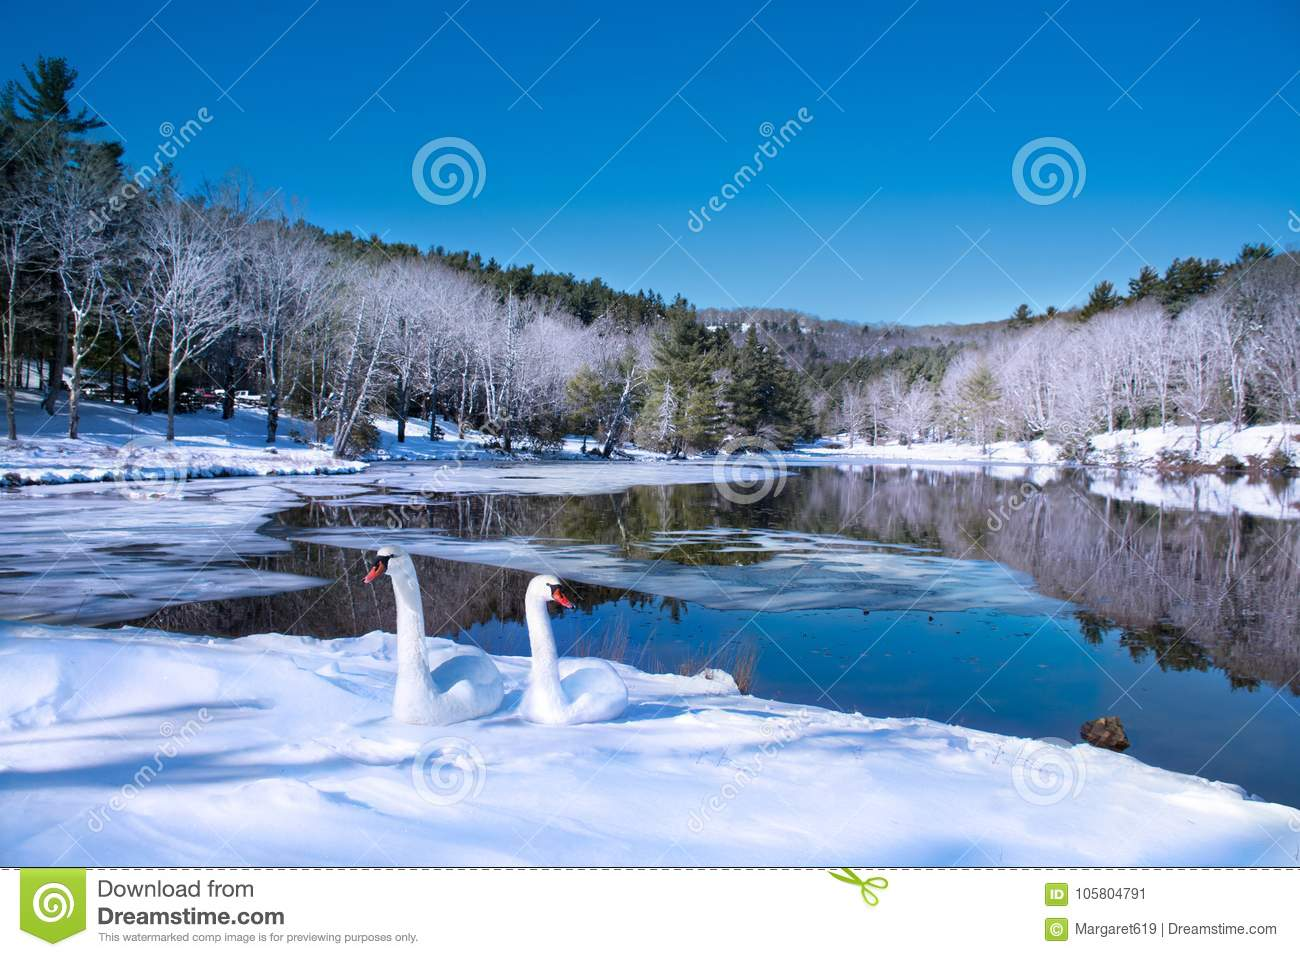 Beautiful swans relaxing on the snow by the lake in frosted forest.